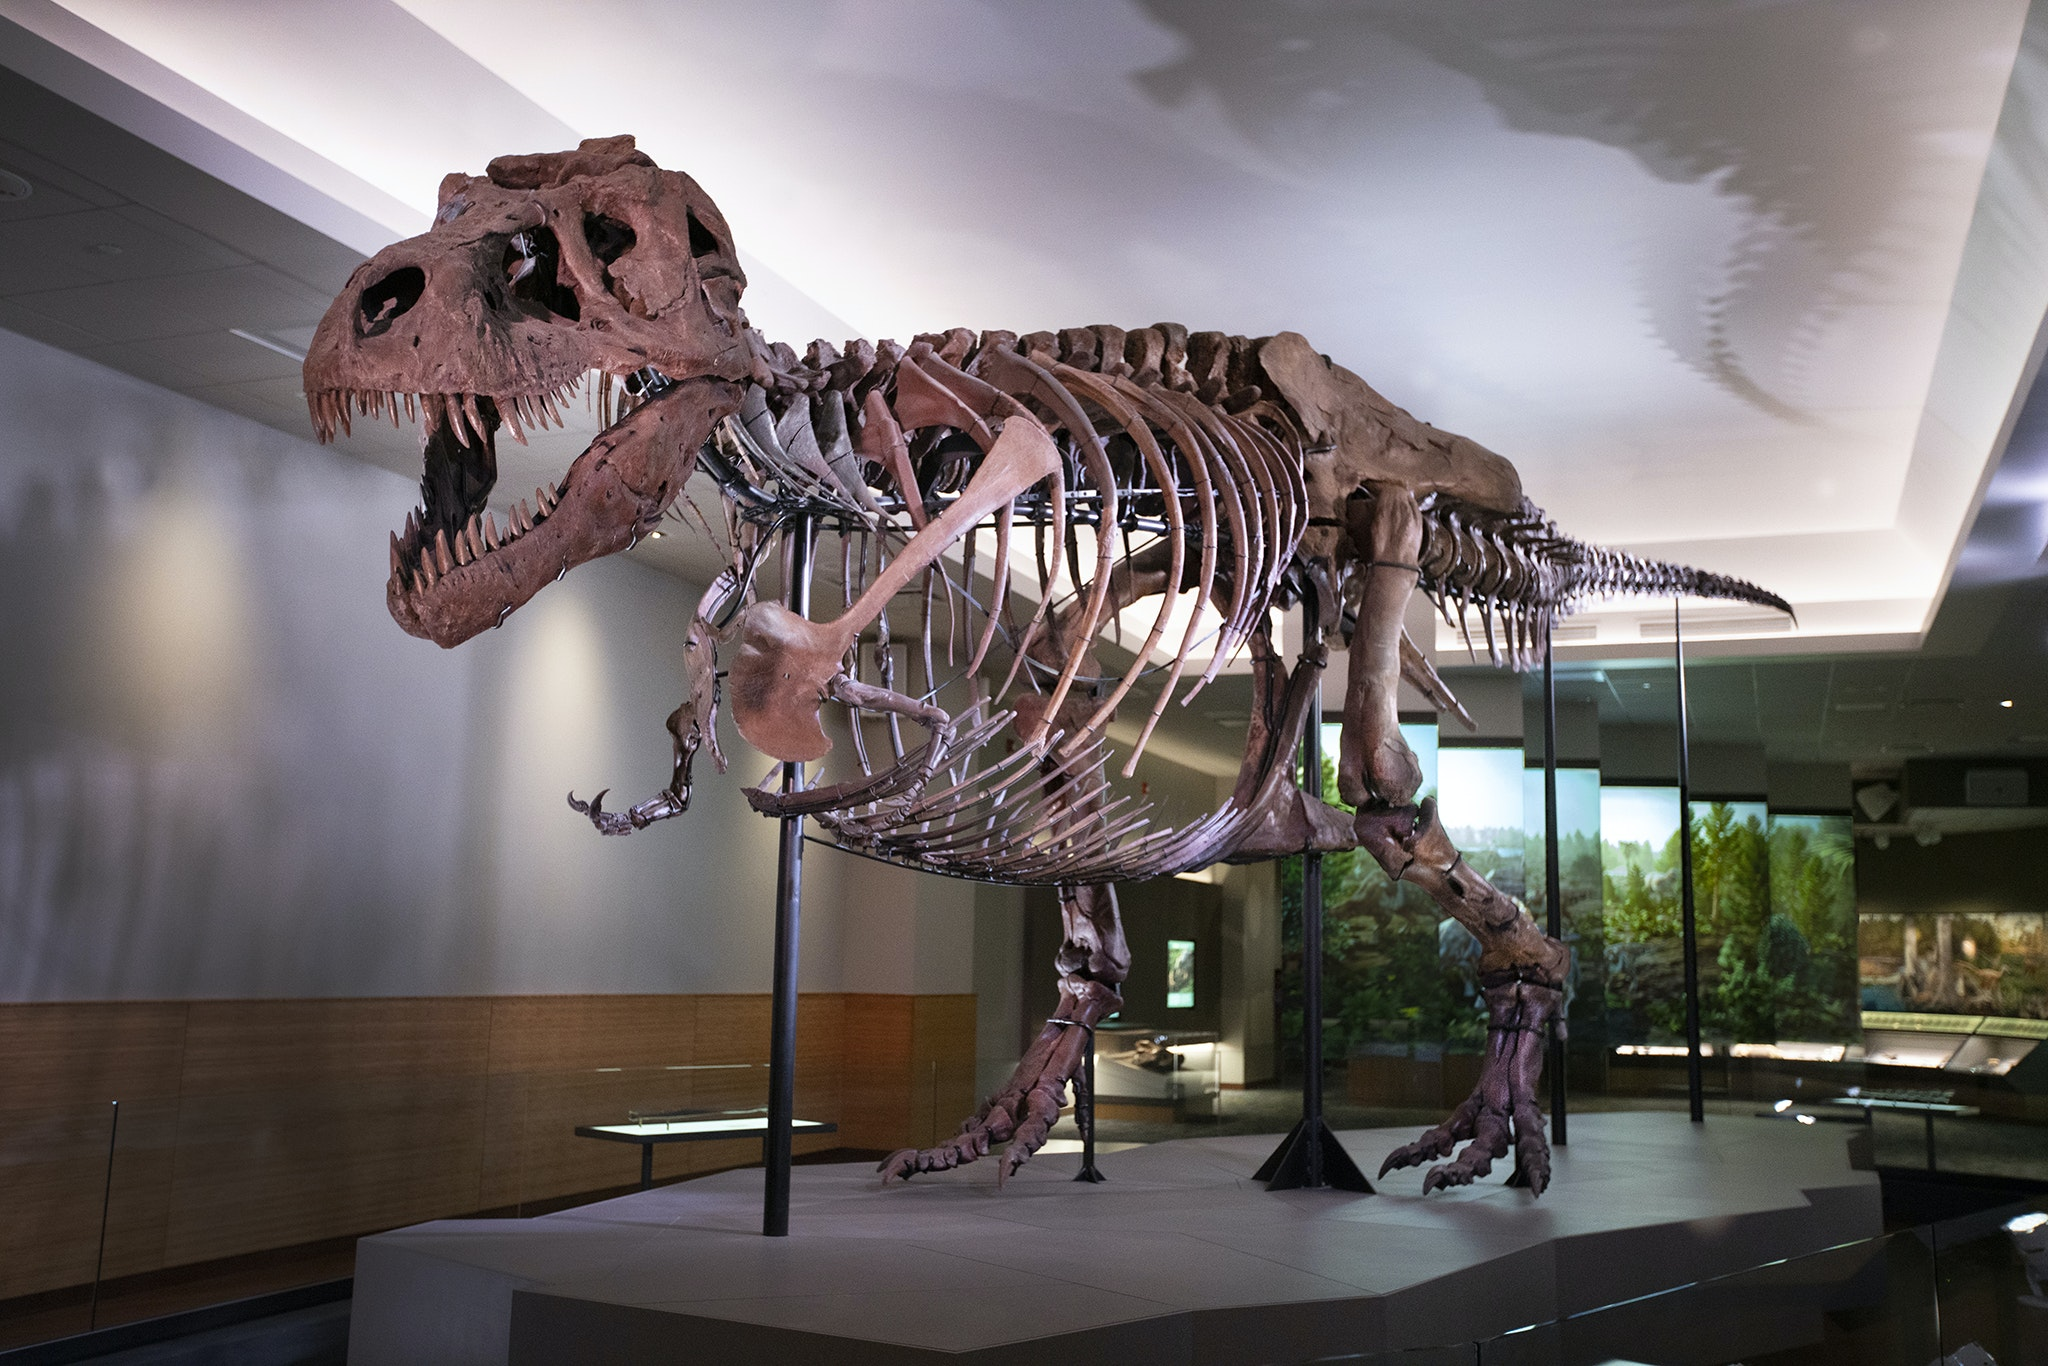 See the world's biggest and most complete Tyrannosaurus rex skeleton on display at Chicago's Field Museum.